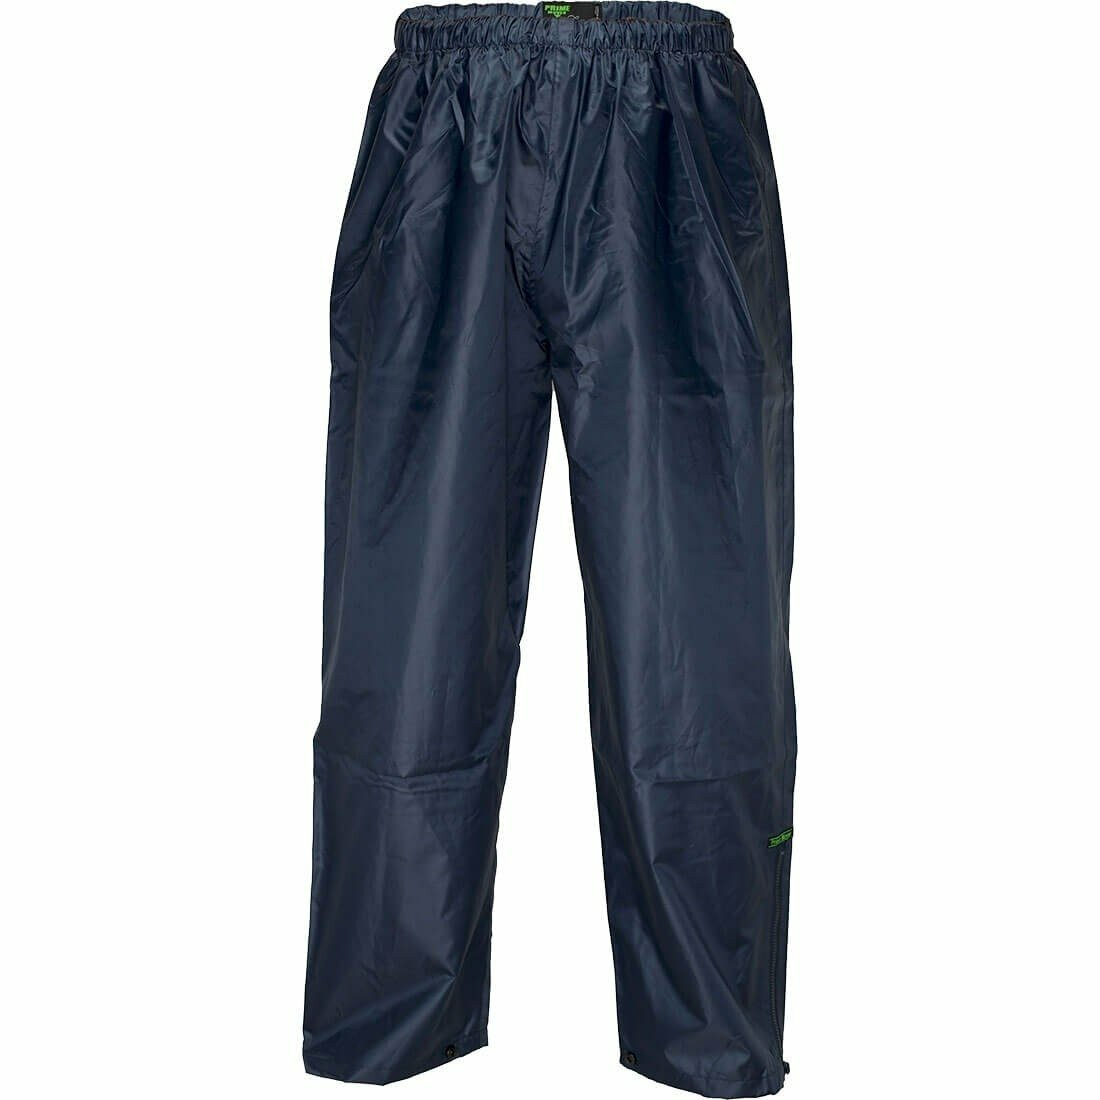 MP205 Wet Weather Pants